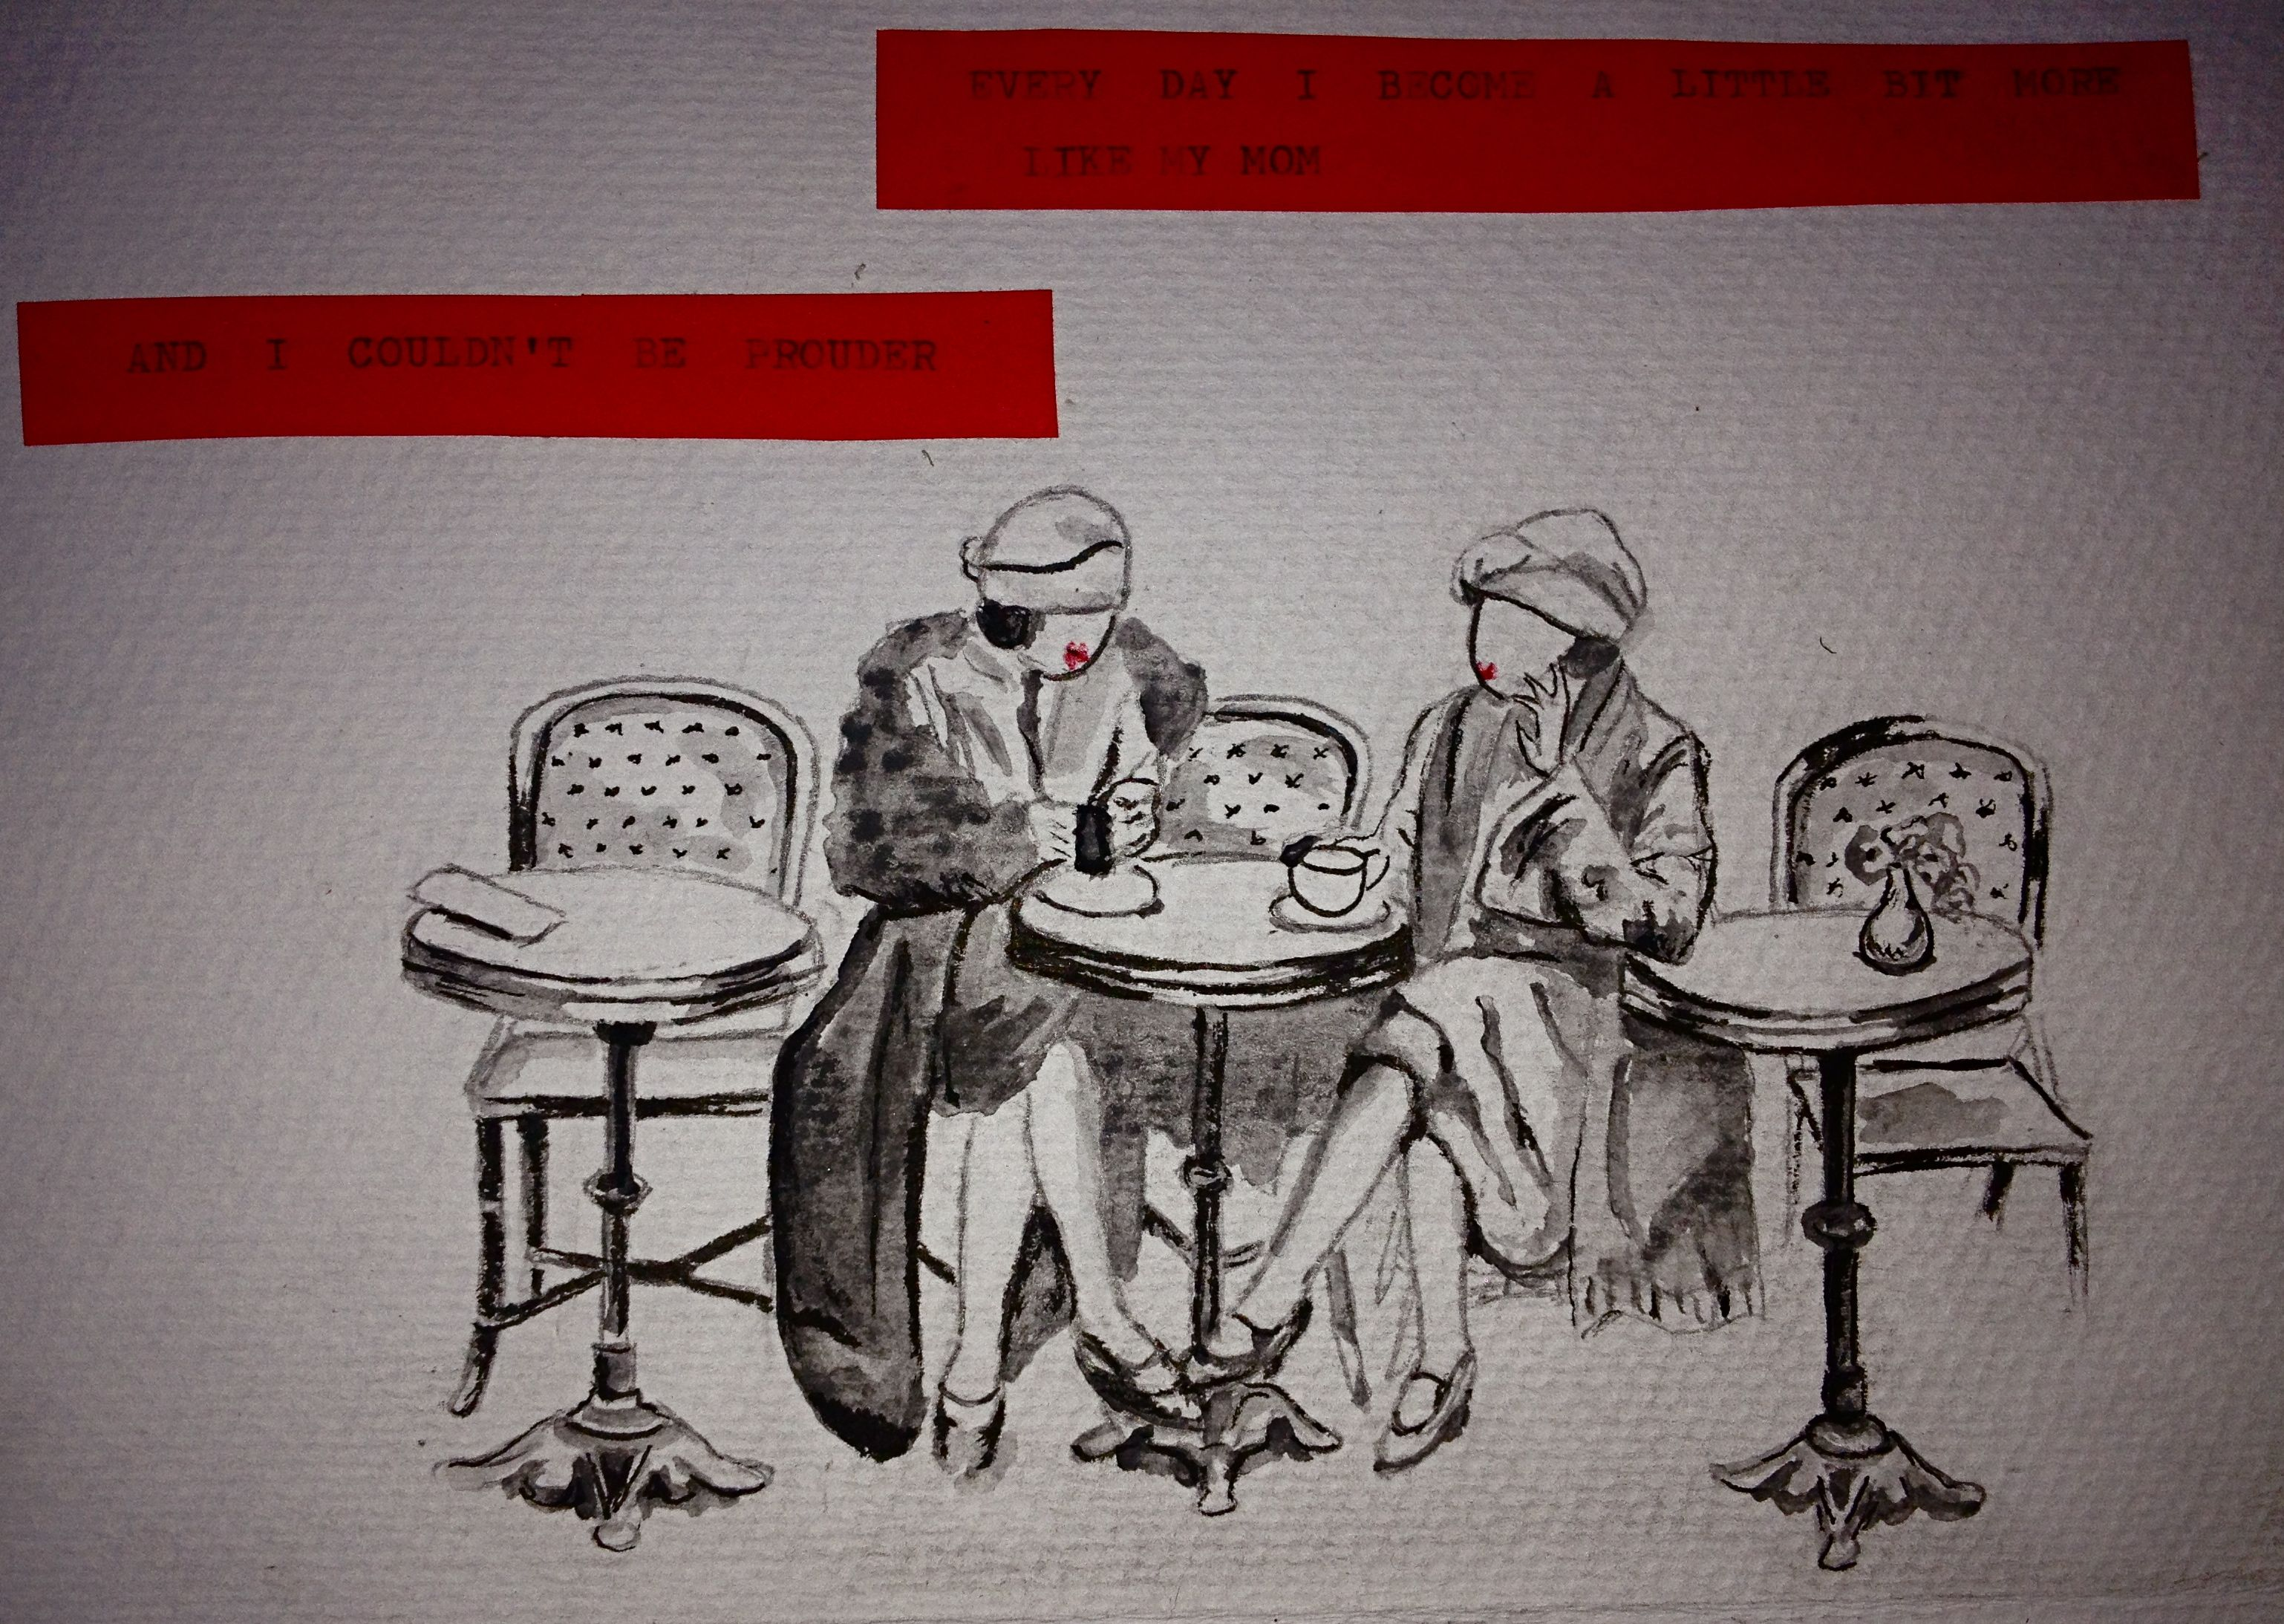 original Art by gloria e. Mother's day drawing. Everyday I become a little bit more like mom and I couldn't be prouder. Coffee house. coffee. 1940's. 40's. Women. drinking coffee. oldies. relaxing. Mom and daughter. water color and pen. black and white.